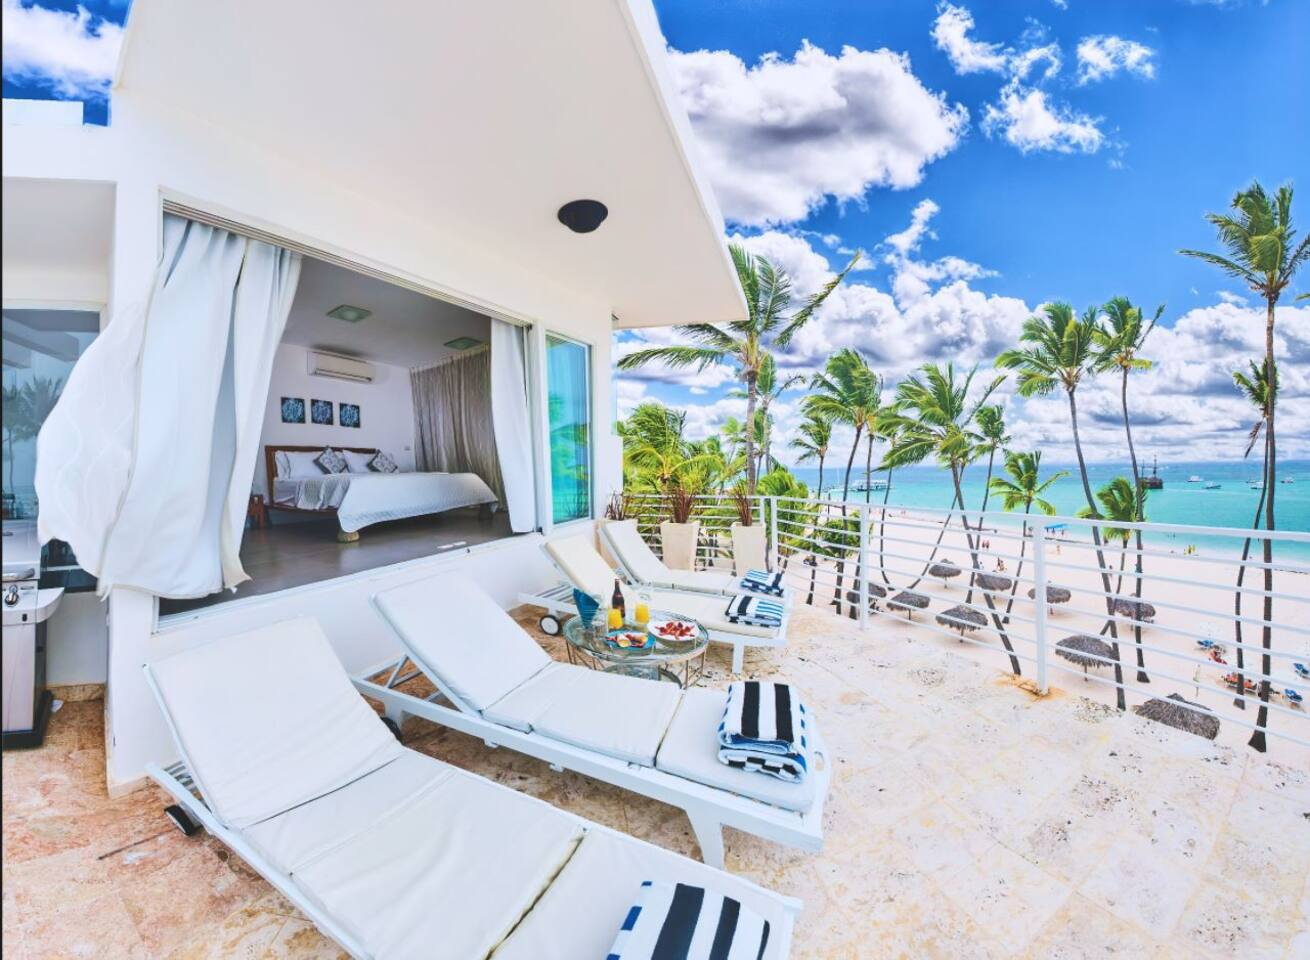 Take a look at this beauty! It's real and it's even better than in the photos. Book it now, this is the most unique and special accommodation with amazing ocean view in Punta Cana. You can have unique emotions and best vacation memories.